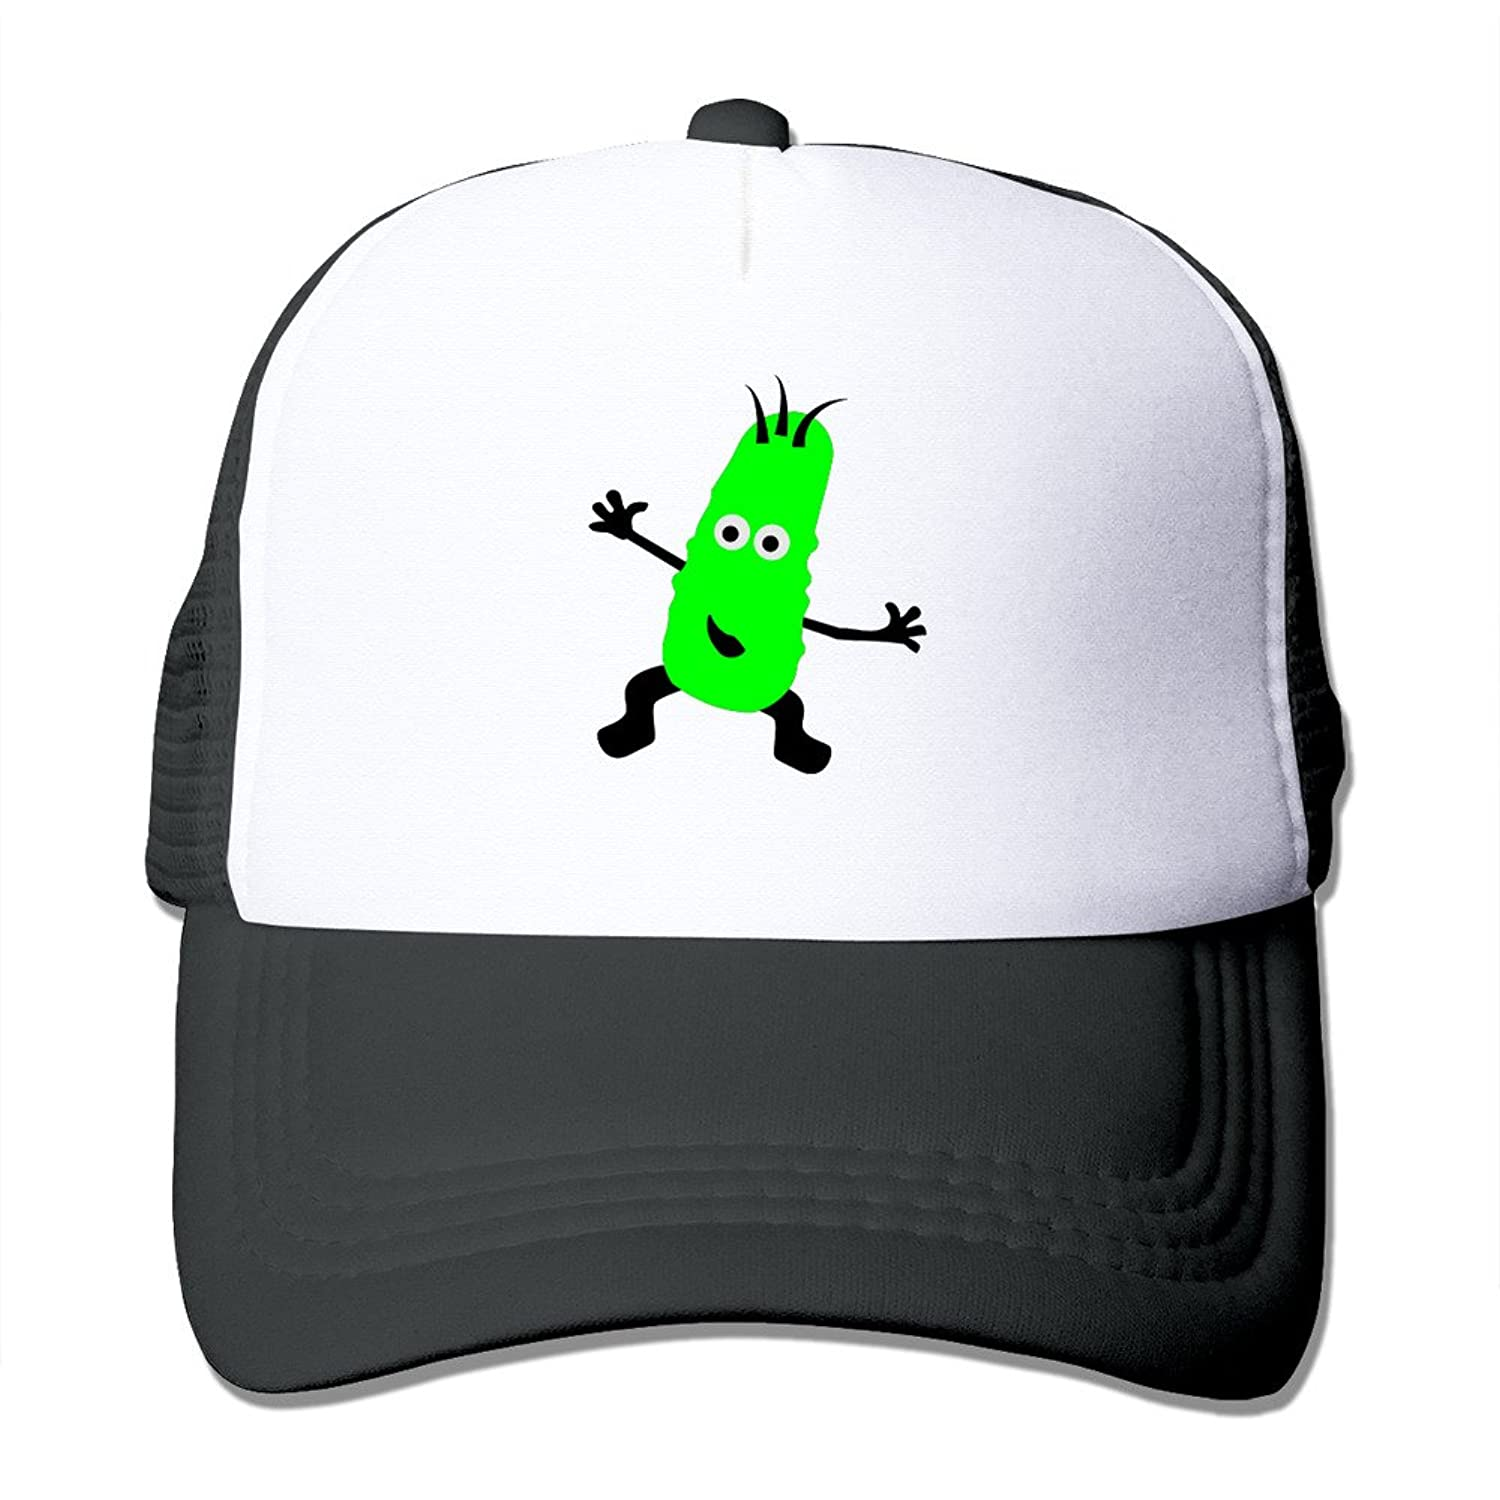 Adult Unisex Pickles 100% Nylon Mesh Caps One Size Fits Most Dancing Hat Adjustable